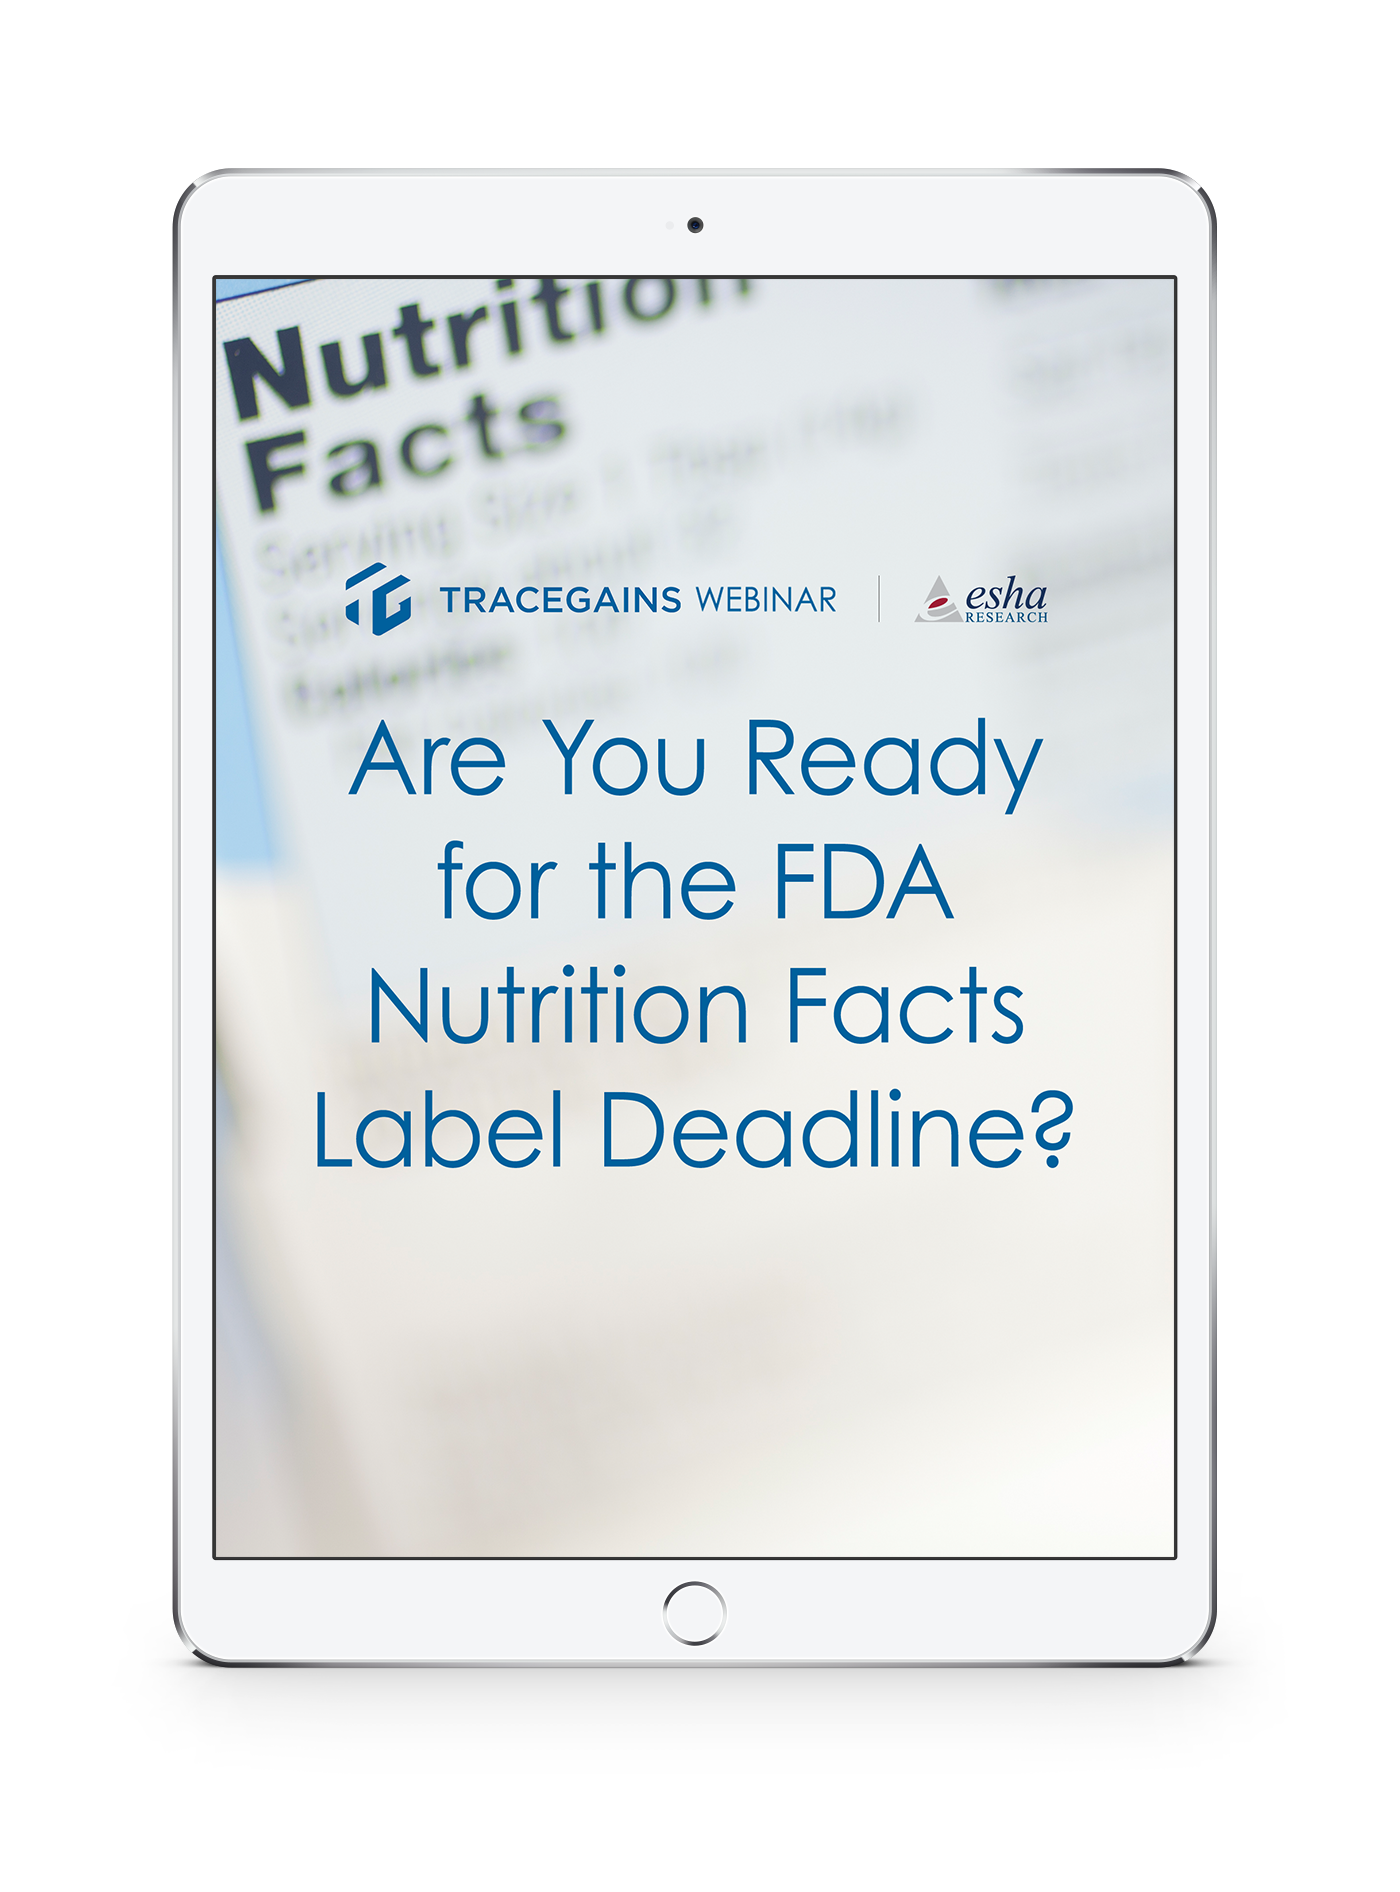 fda-nutrition-labeling-deadline-webinar-ipad